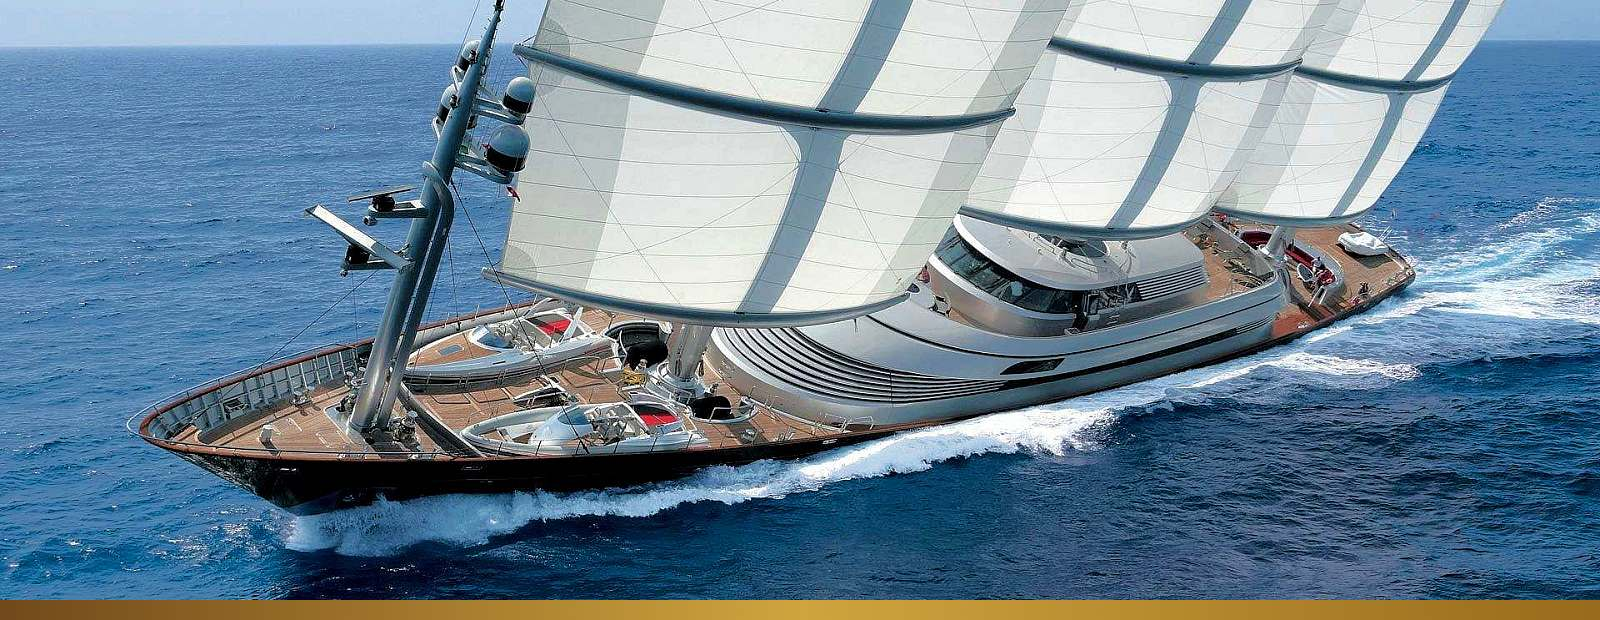 Sailing Yachts Charter in Greece and Monaco - HELLAS YACHTING